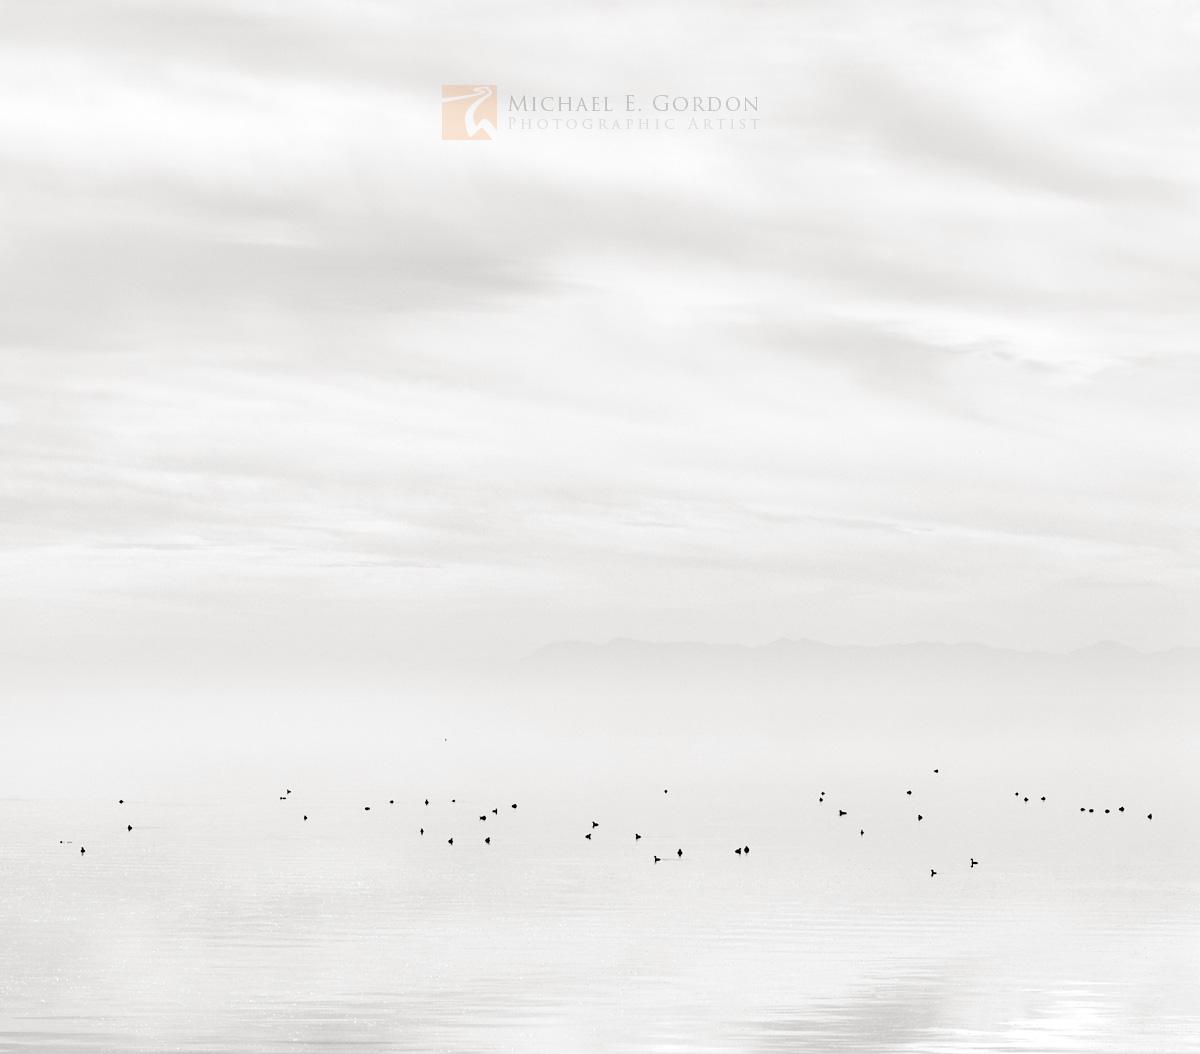 Eared Grebes, Salton Sea, Podiceps nigricollis, hover, overcast, high key, atmosphere, photo